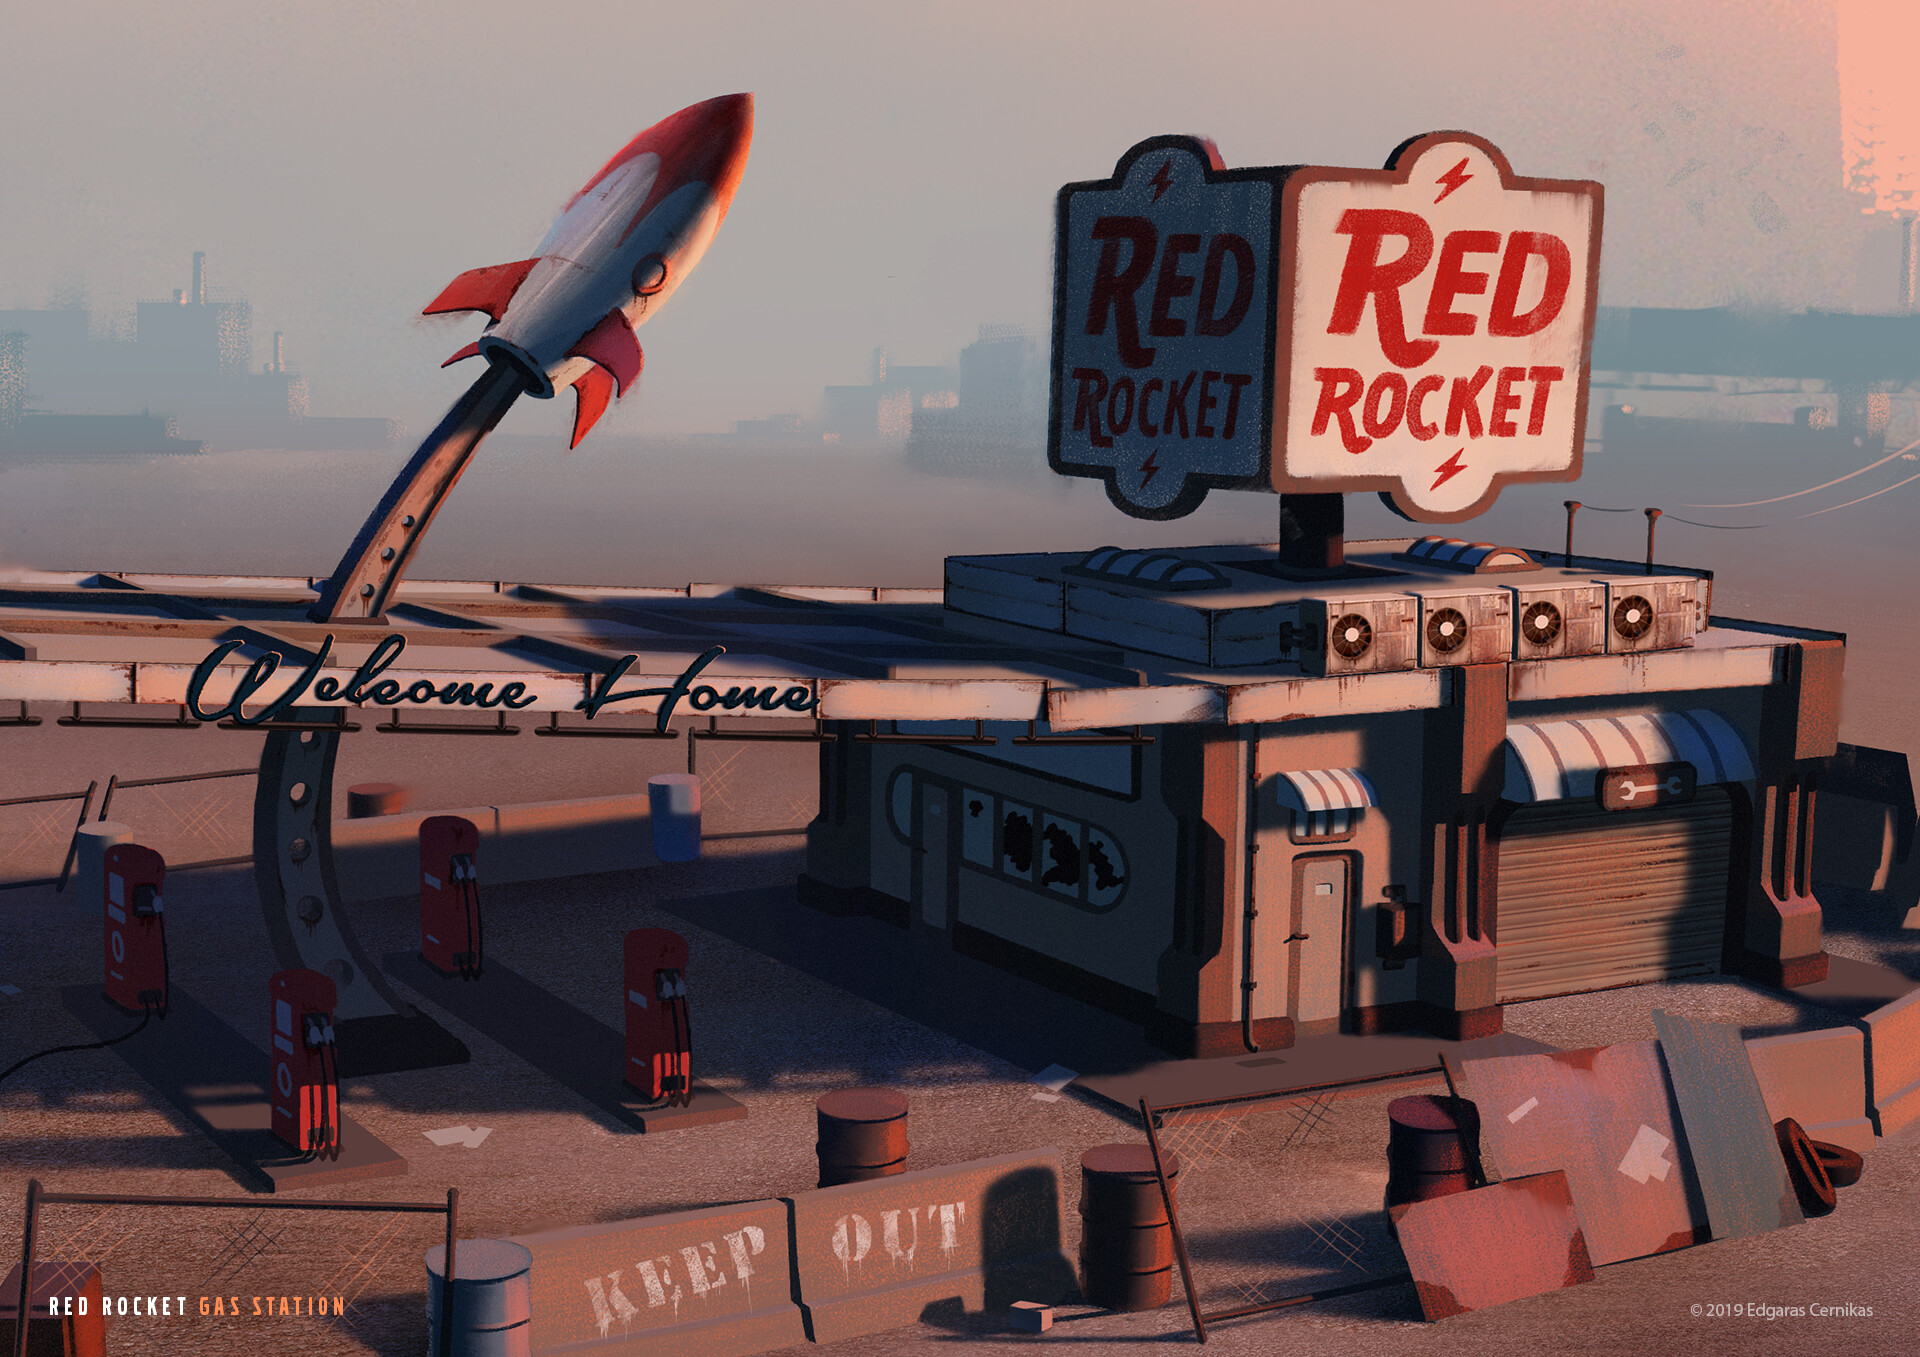 Edgaras cernikas red rocket gas station close up